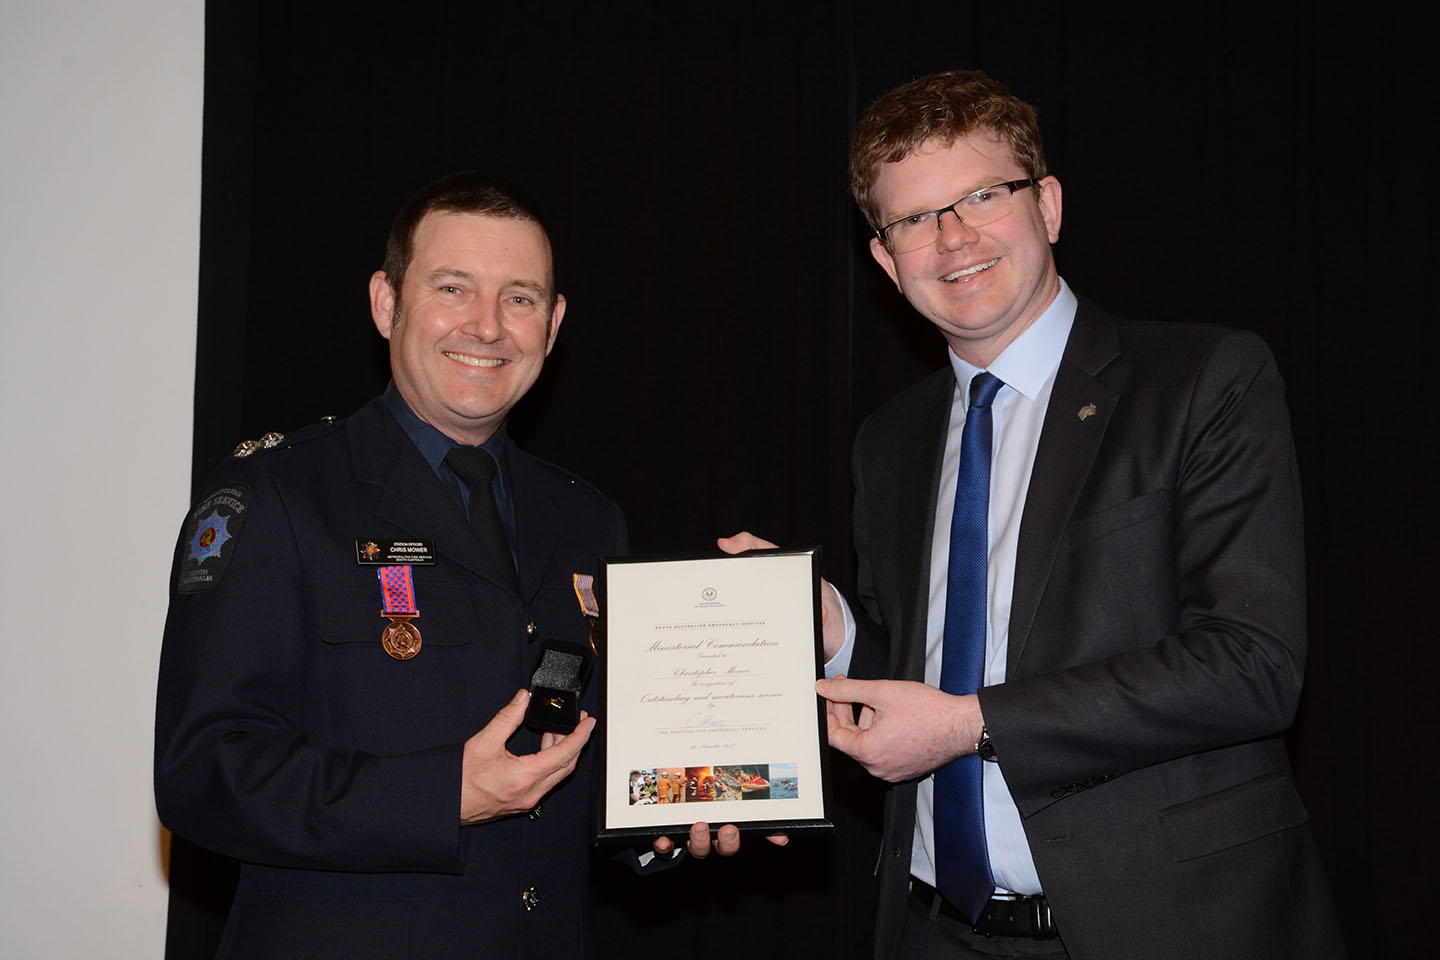 Emergency Services Medal and Commendations C Mower